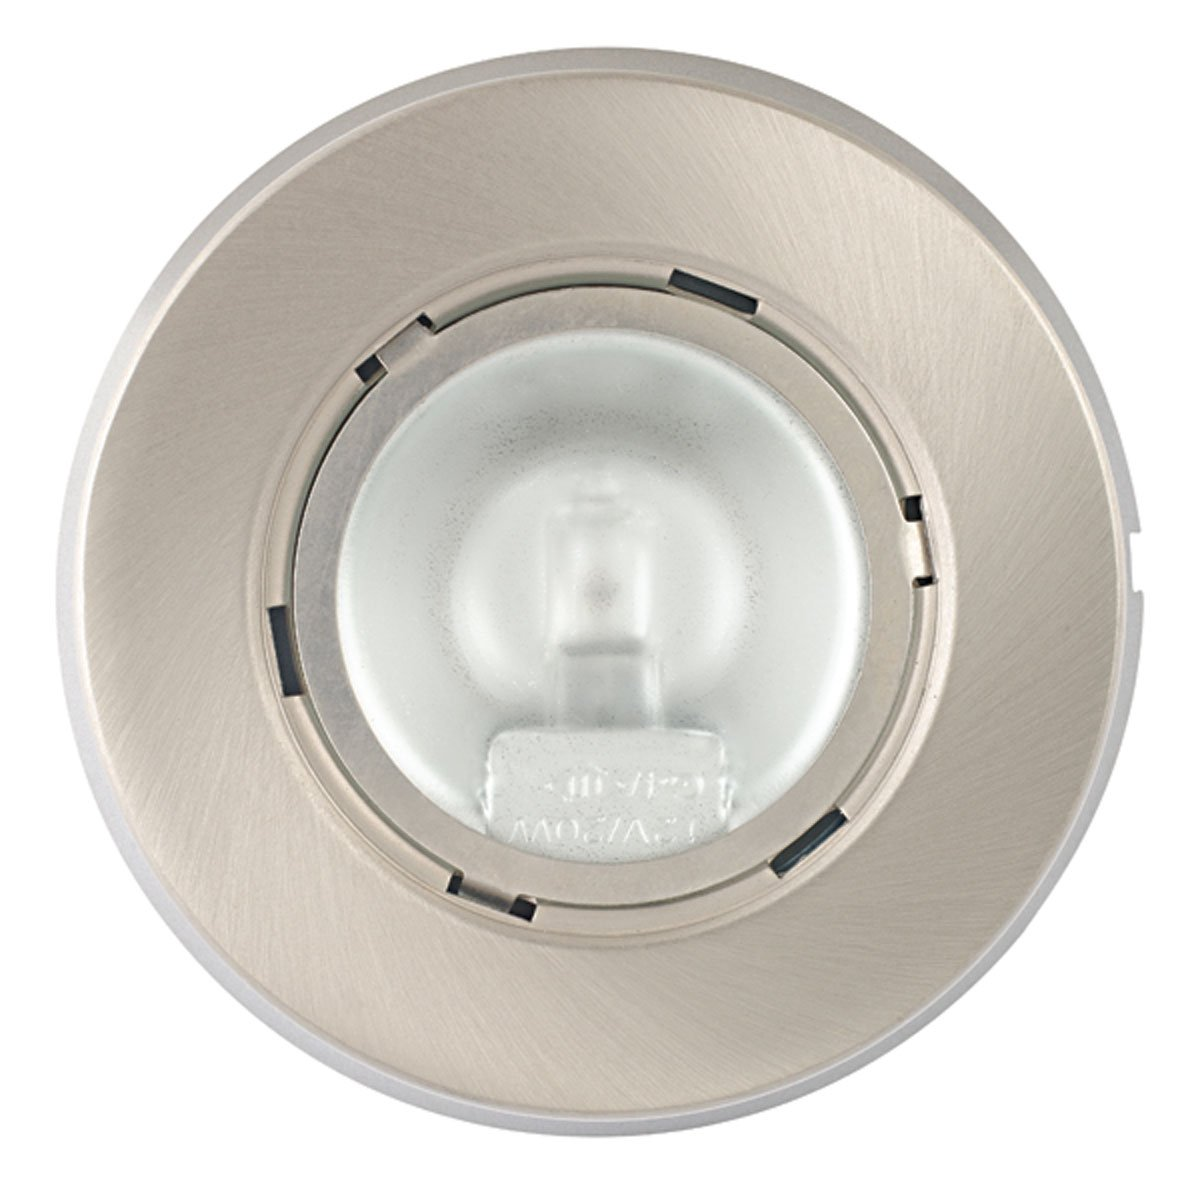 Globe electric 20w xenon puck light brushed nickel finish 39 inch globe electric 20w xenon puck light brushed nickel finish 39 inch connecting cable bulb included 25662 tools home improvement amazon canada aloadofball Gallery